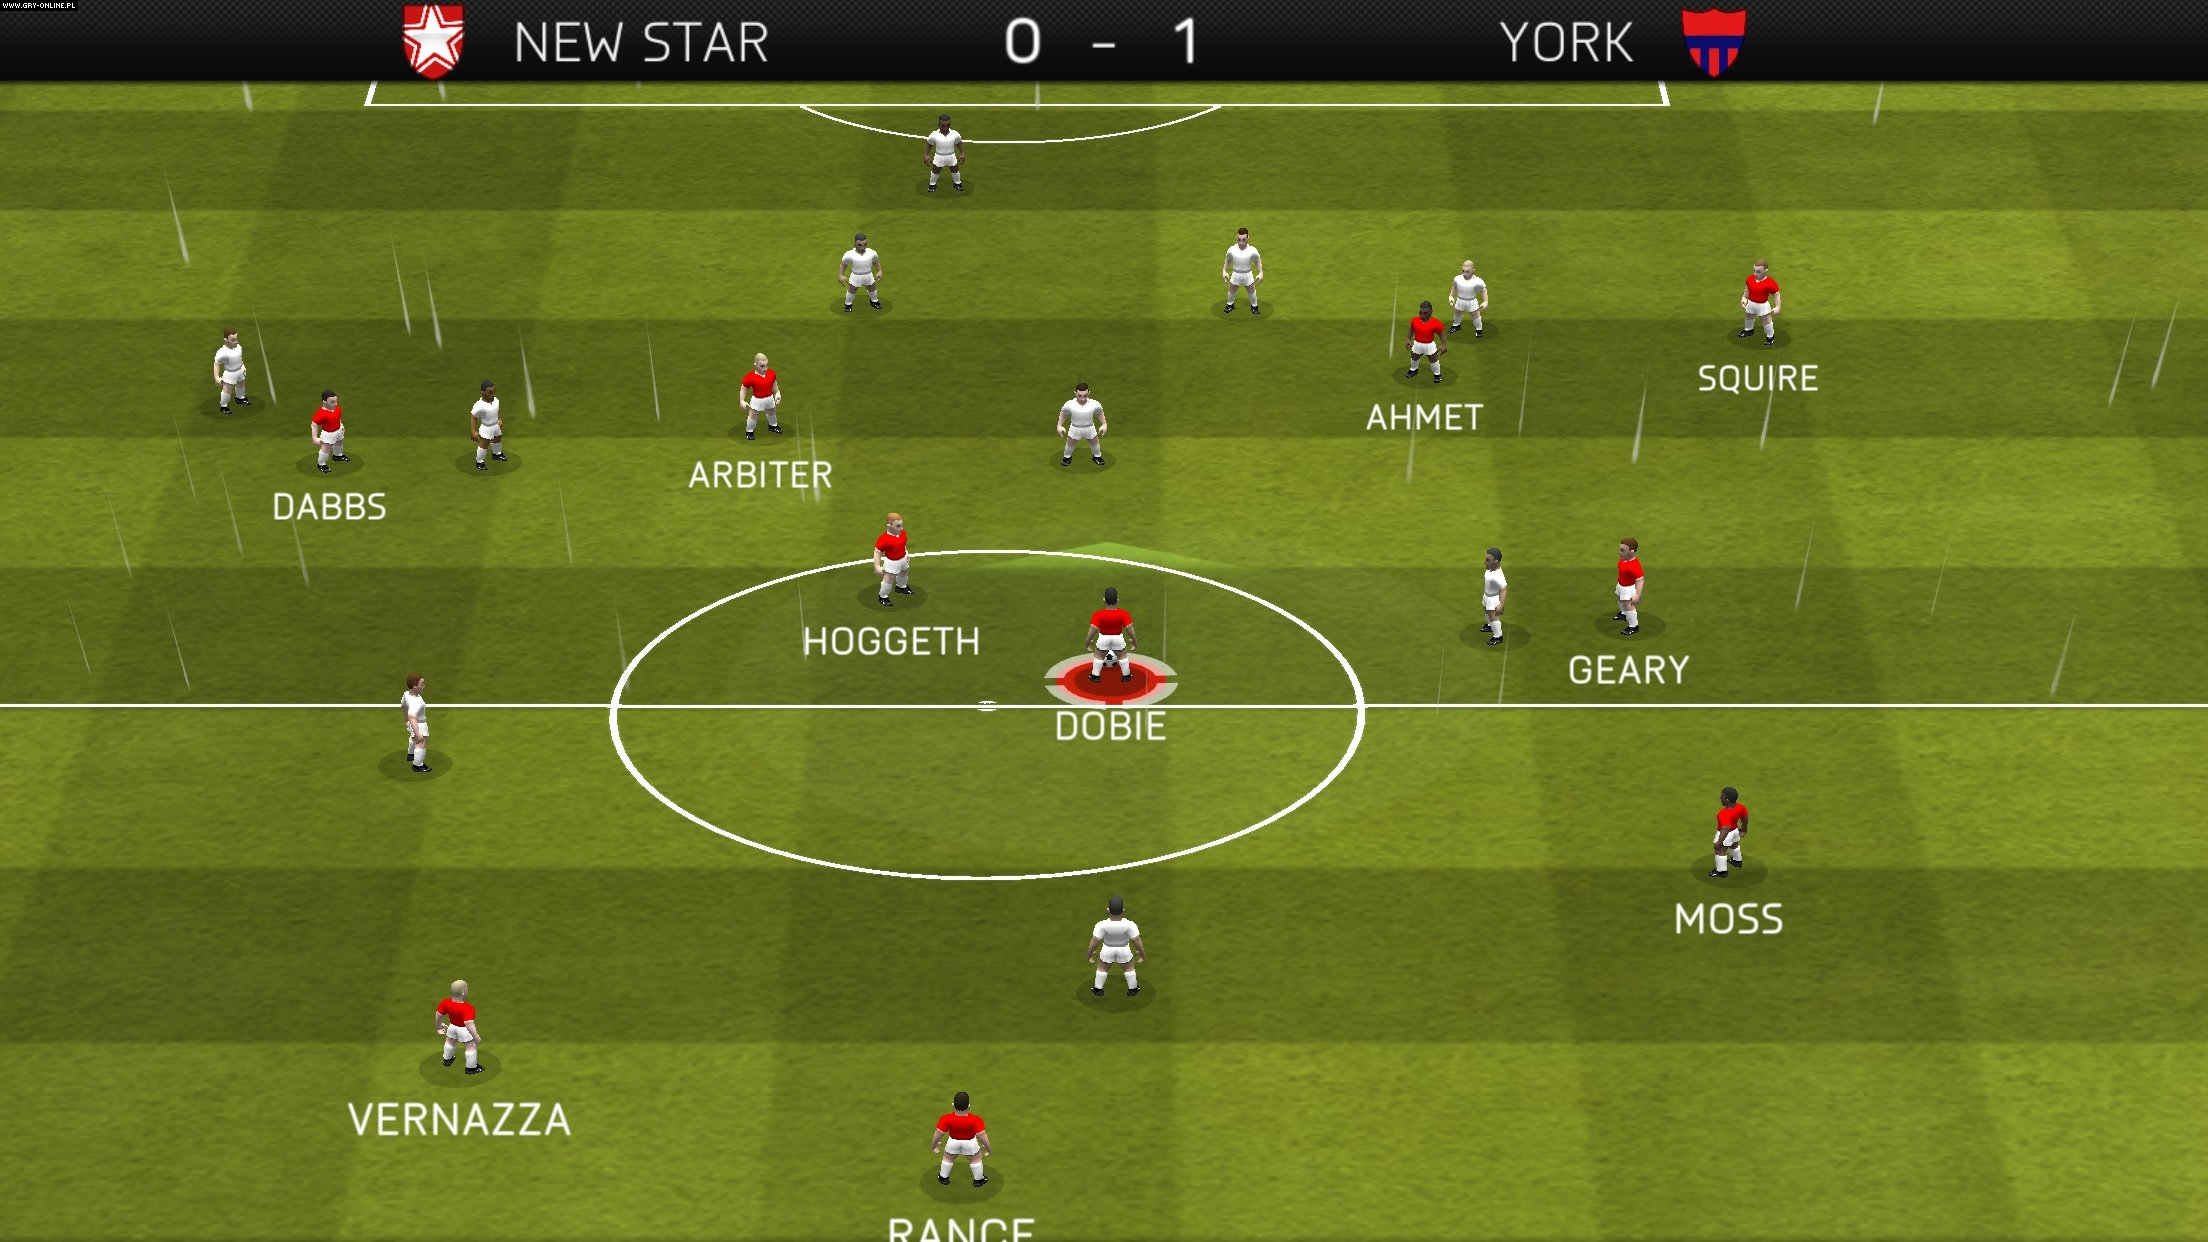 New Star Manager iOS, AND Games Image 1/5, New Star Games